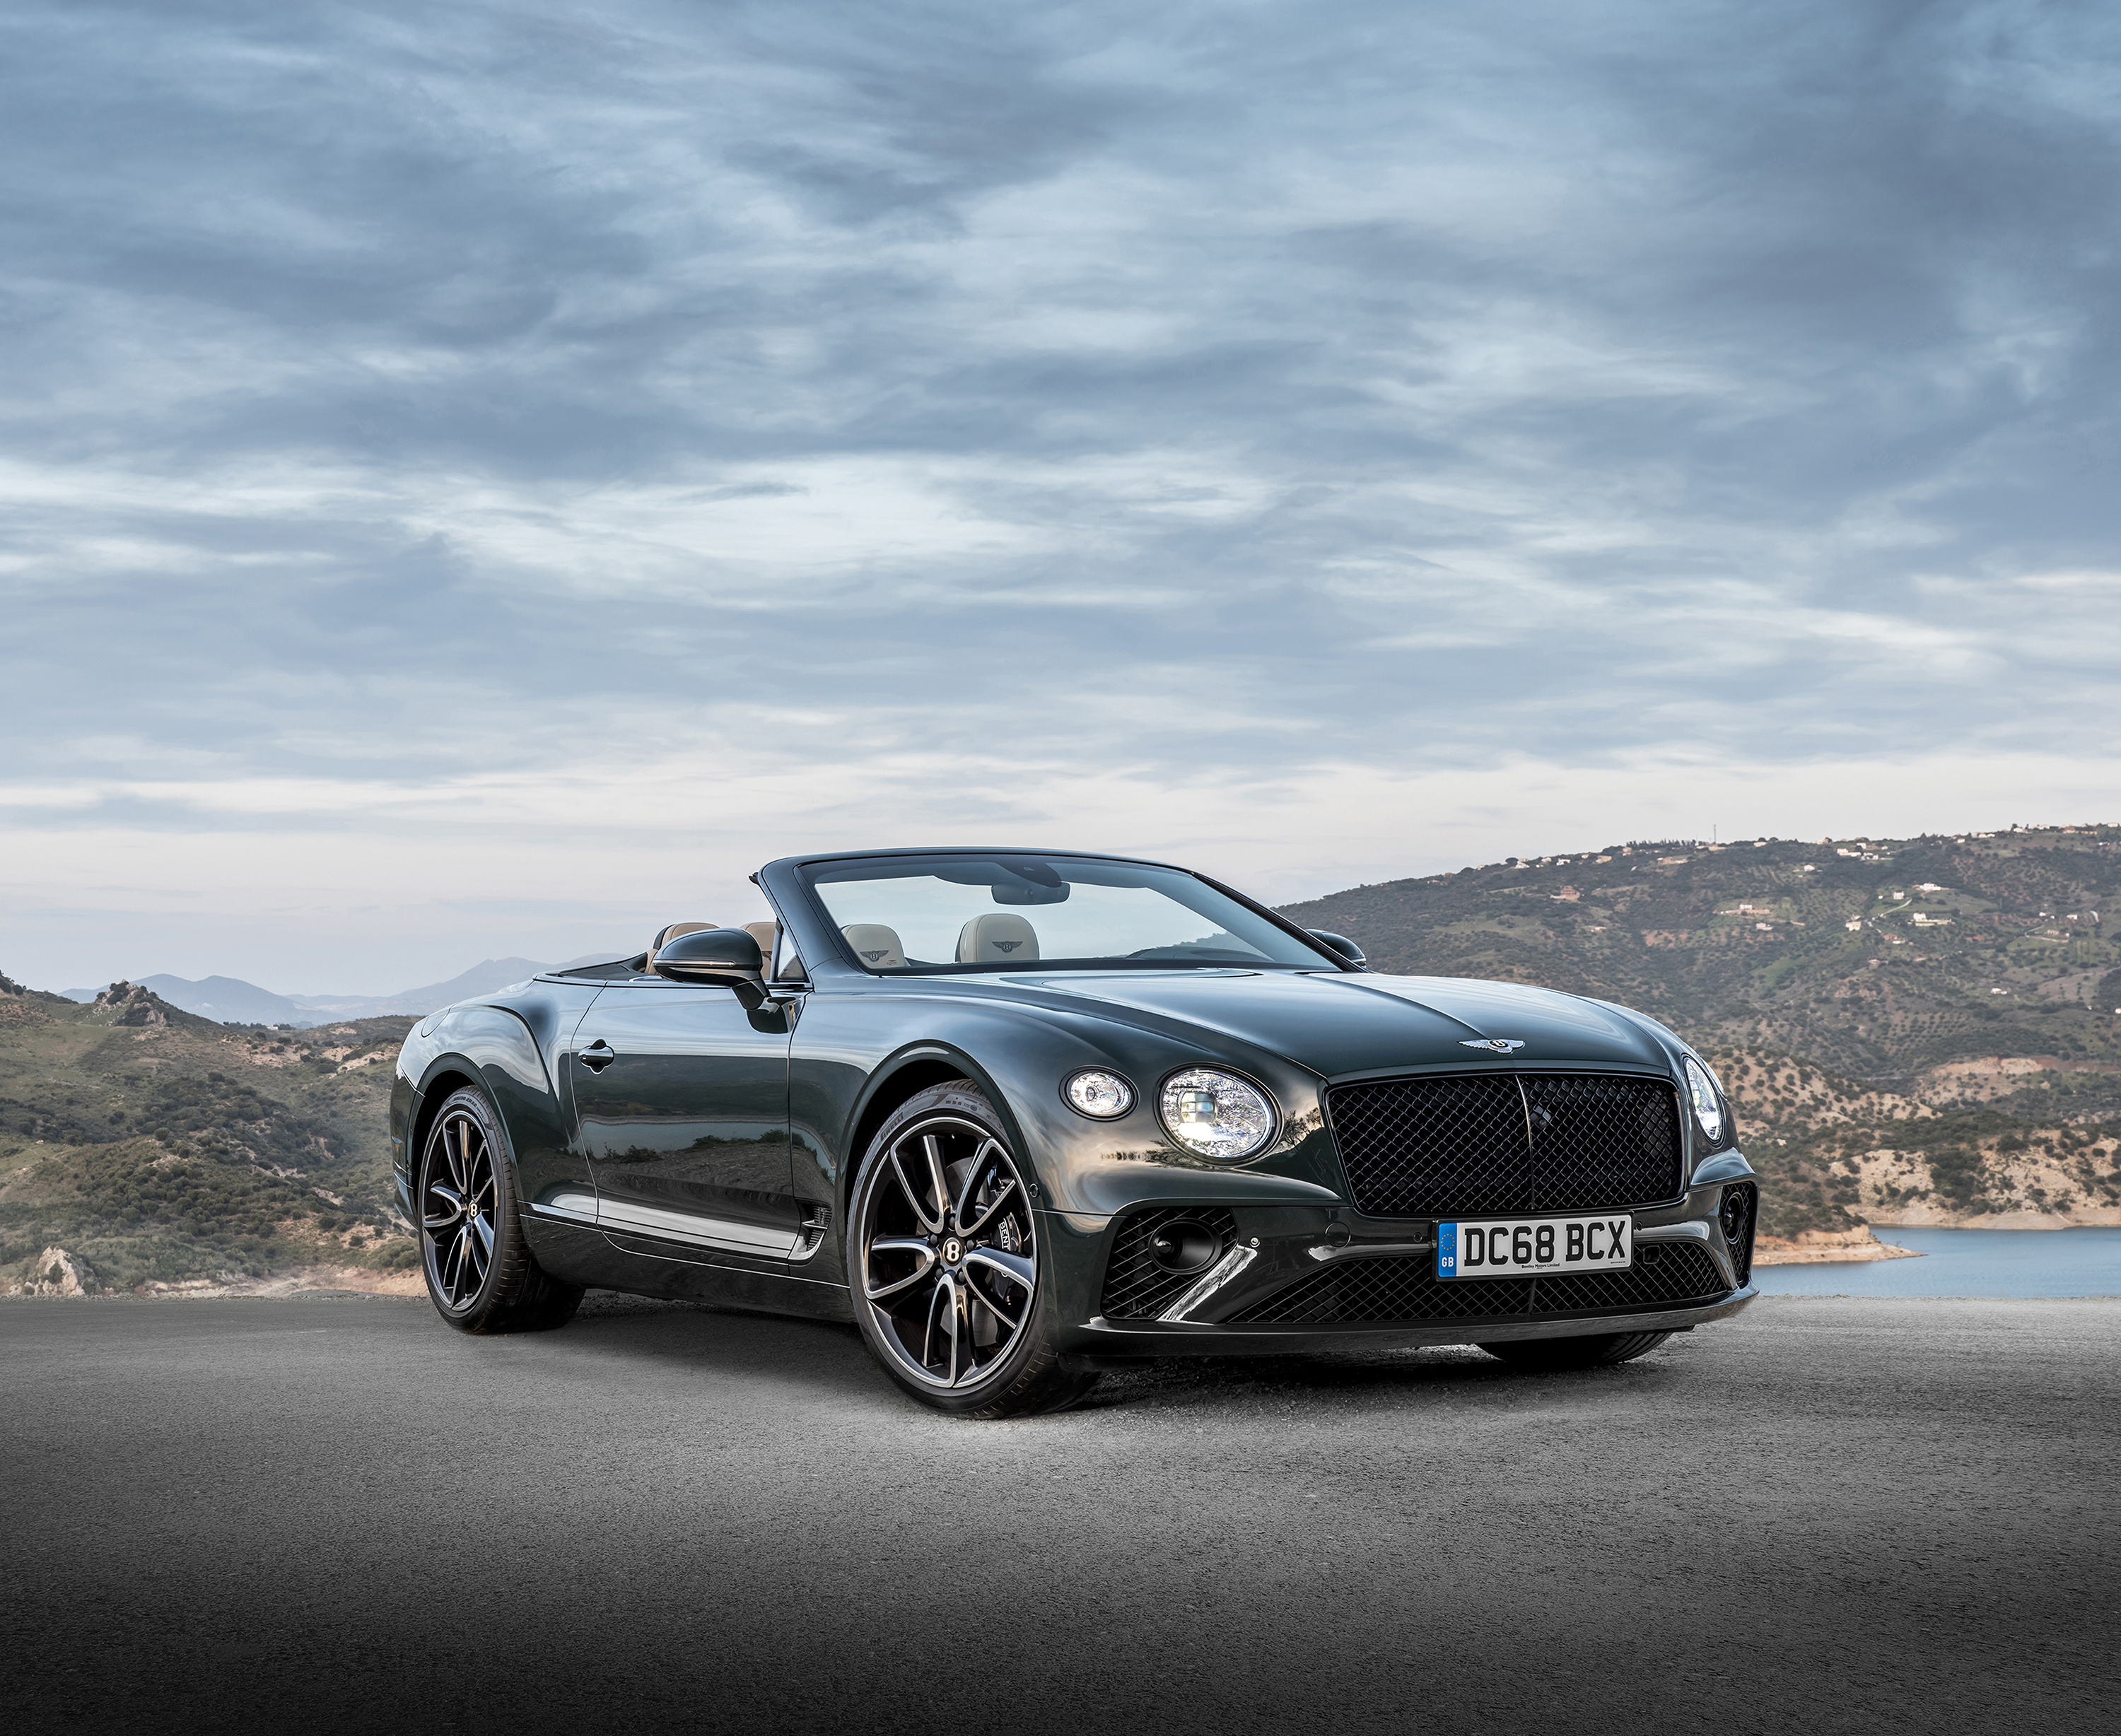 Bentley Continental Gt Convertible Review Power And Poise In Perfect Harmony Country Life